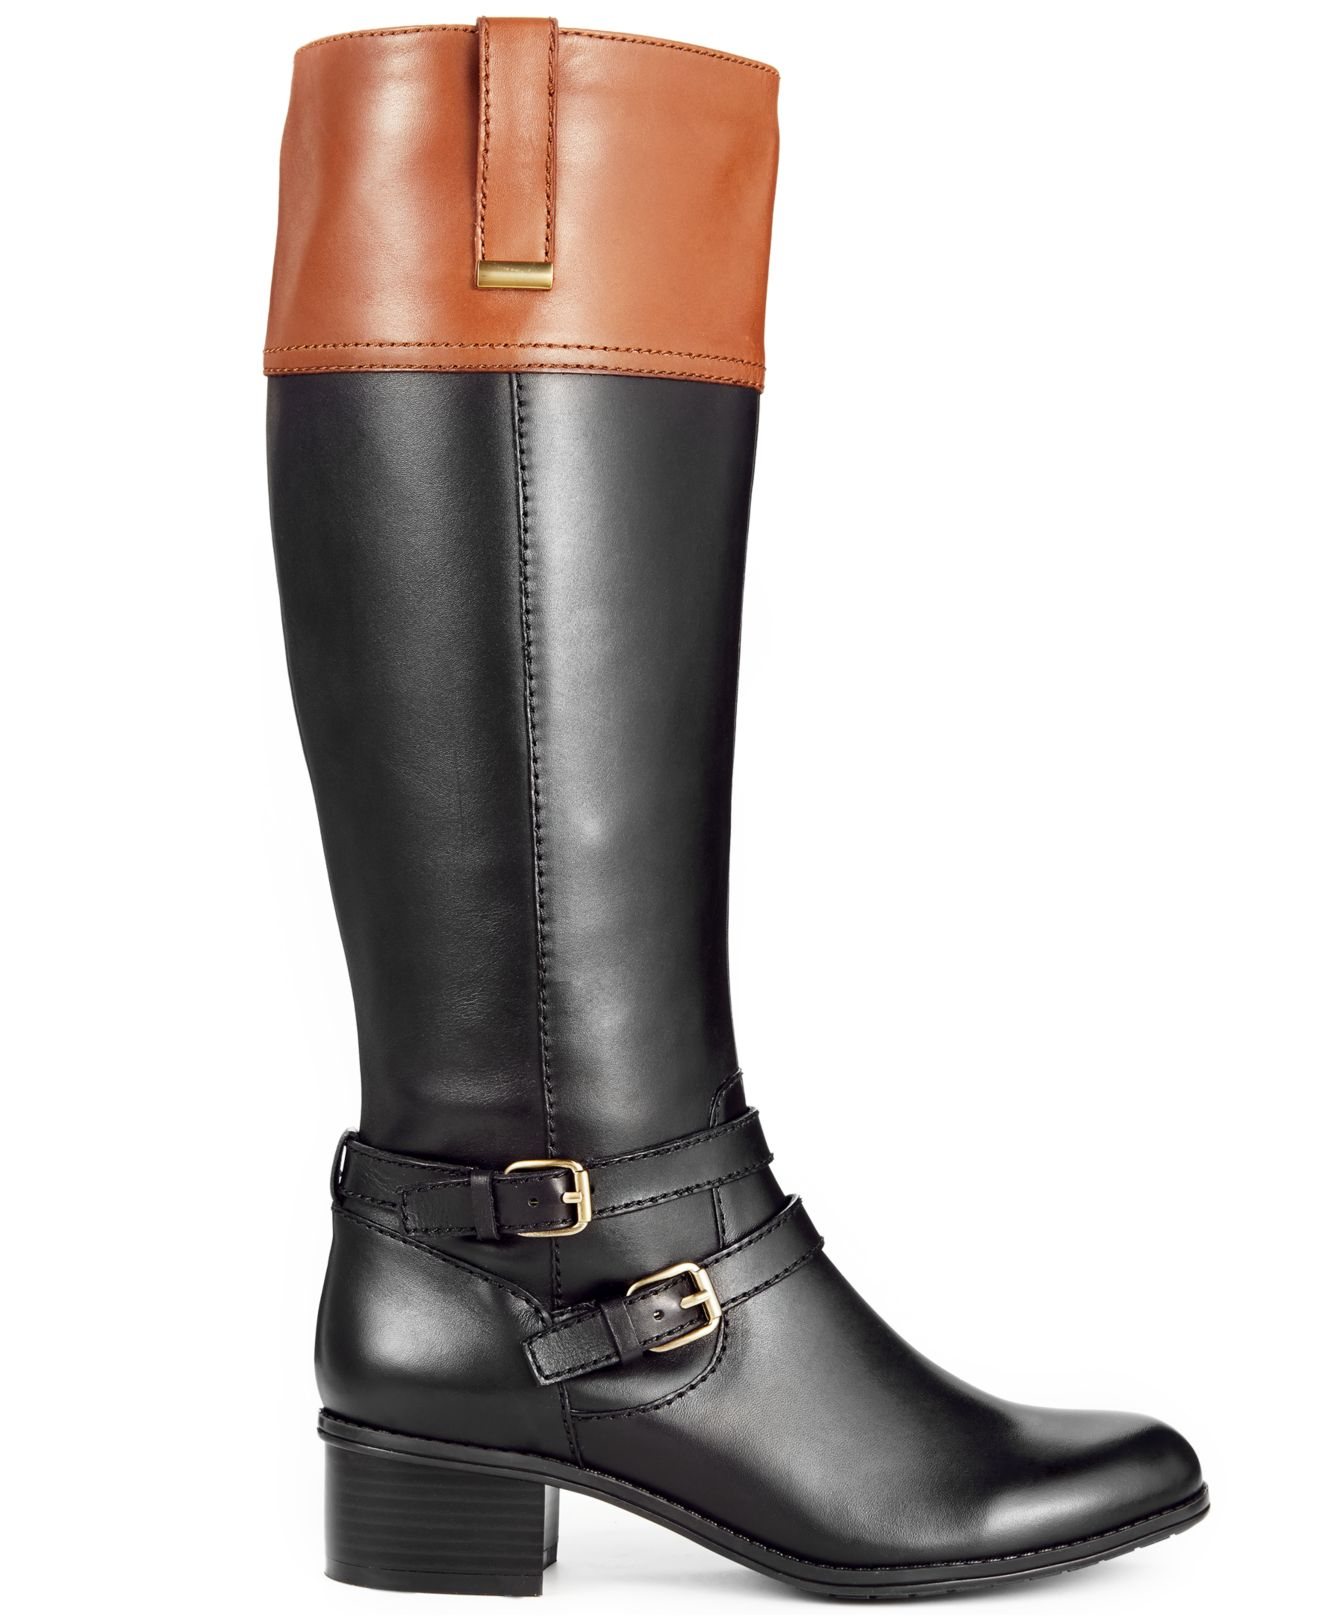 Black And Brown Riding Boots Bandolino Pictures to Pin on ...